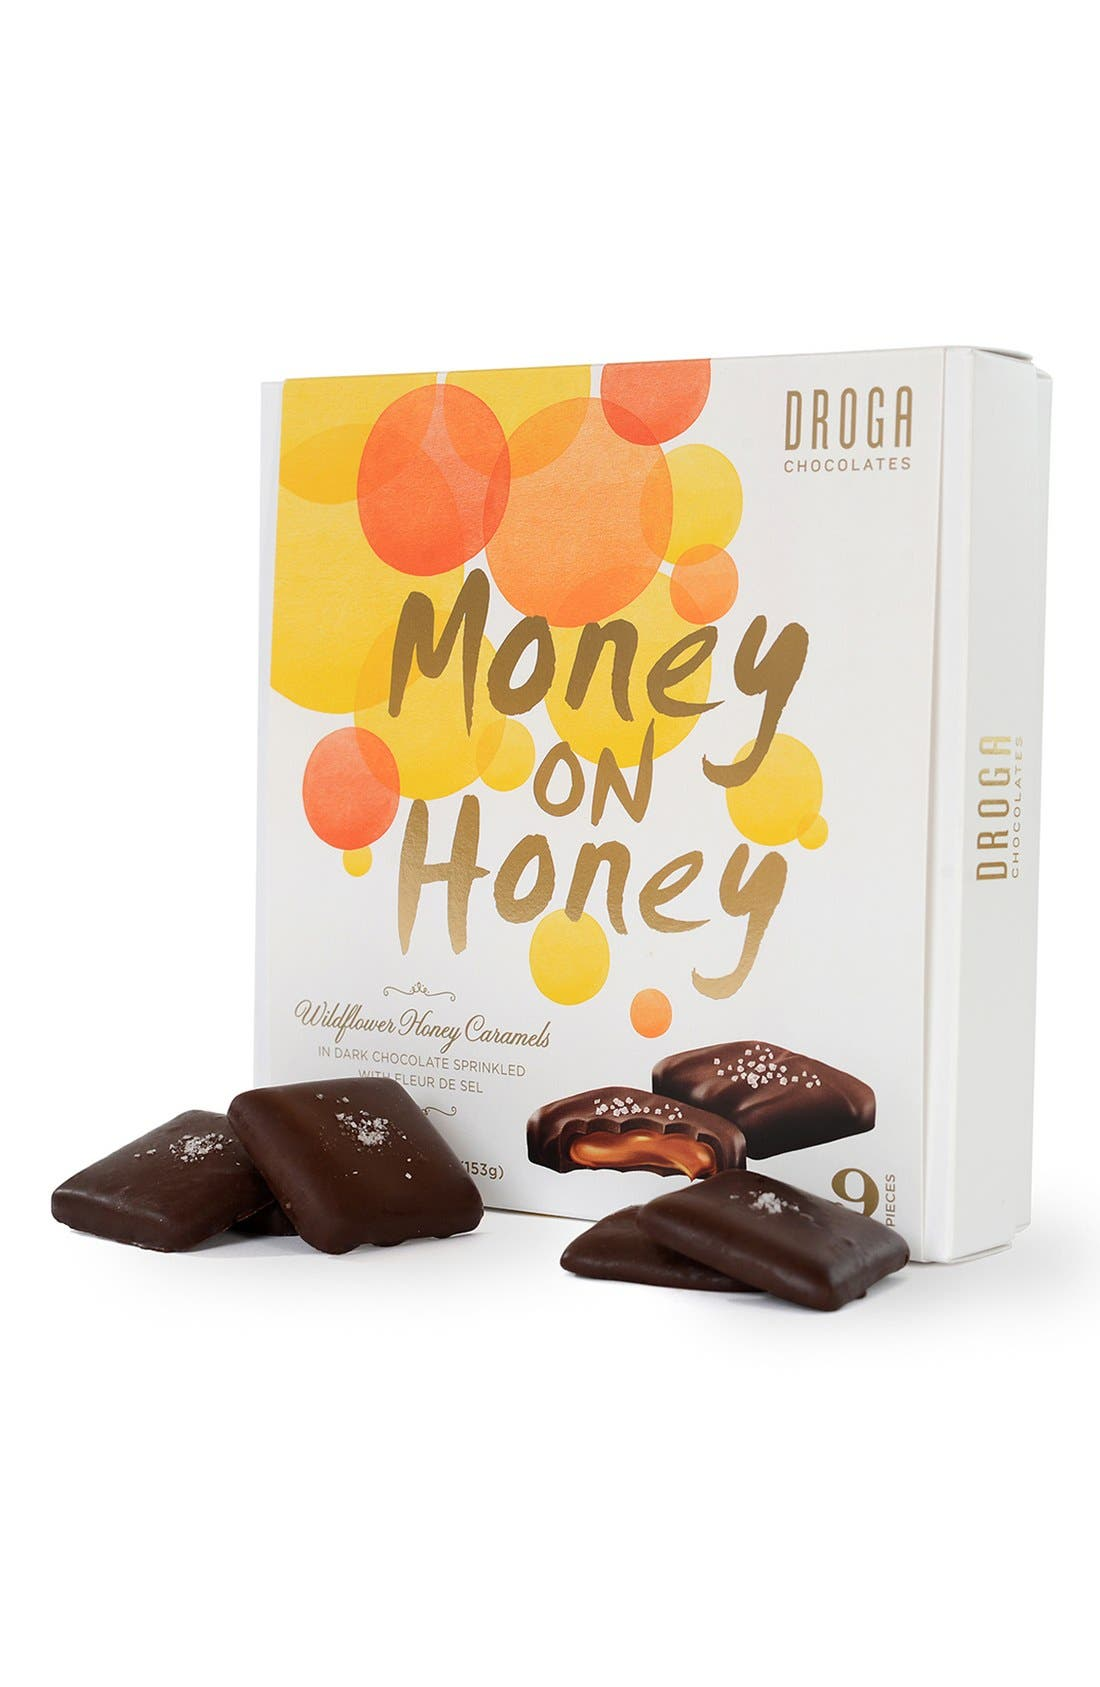 Droga Chocolates 'Money on Honey' Wildflower Honey Caramels in Dark Chocolate (9 Pieces)